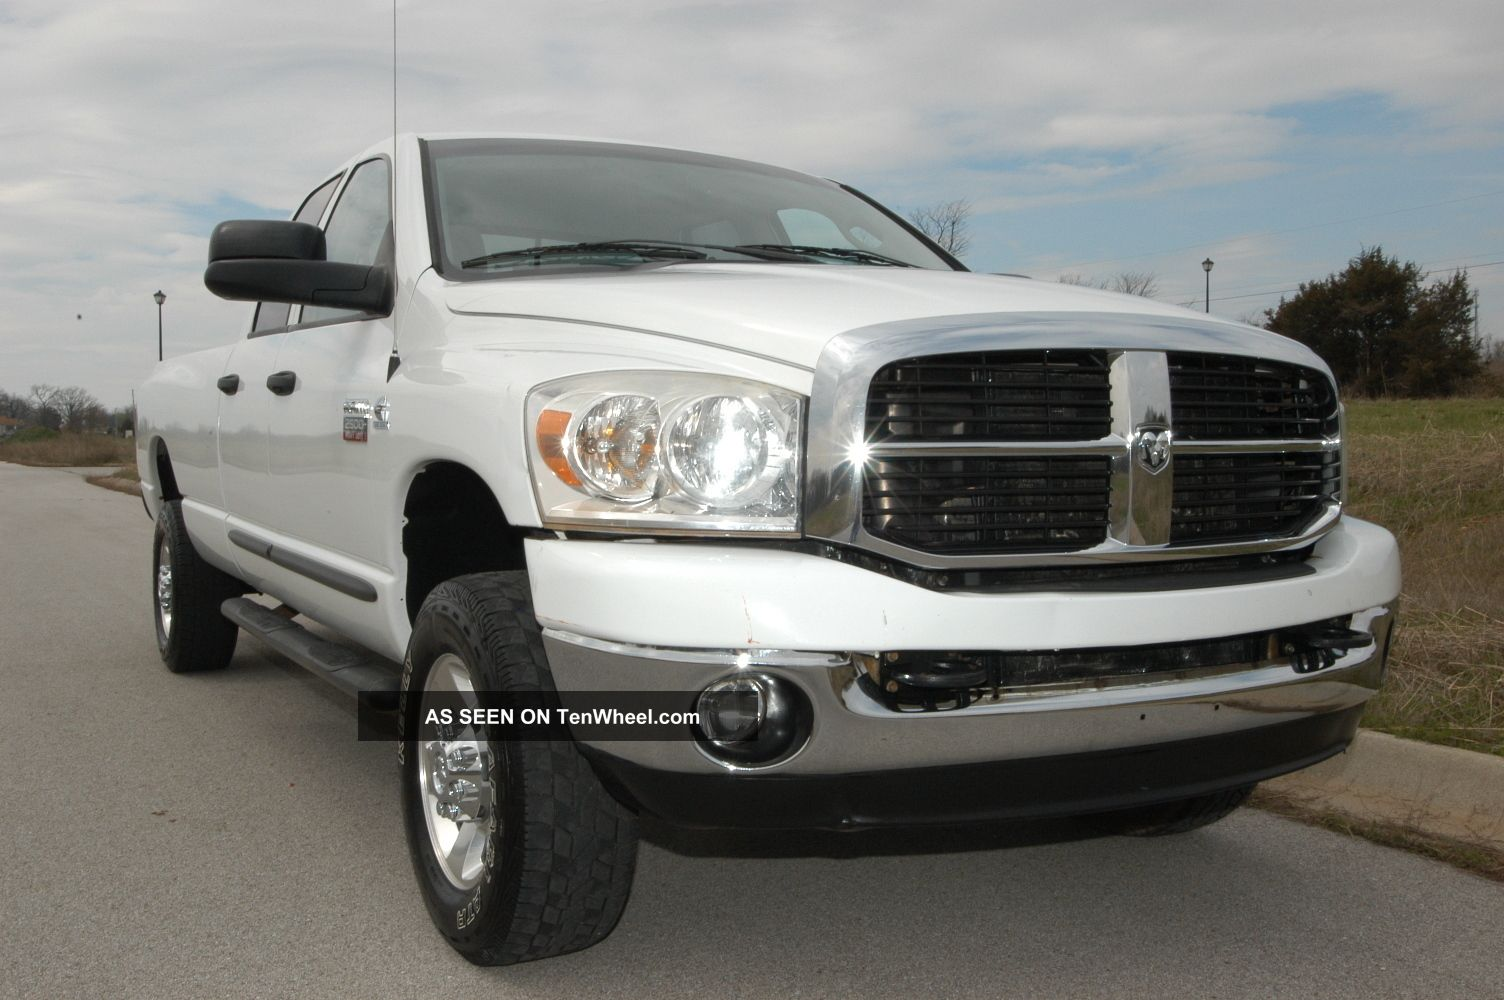 2007 dodge ram 1500 slt quad cab 4x4 towing. Black Bedroom Furniture Sets. Home Design Ideas